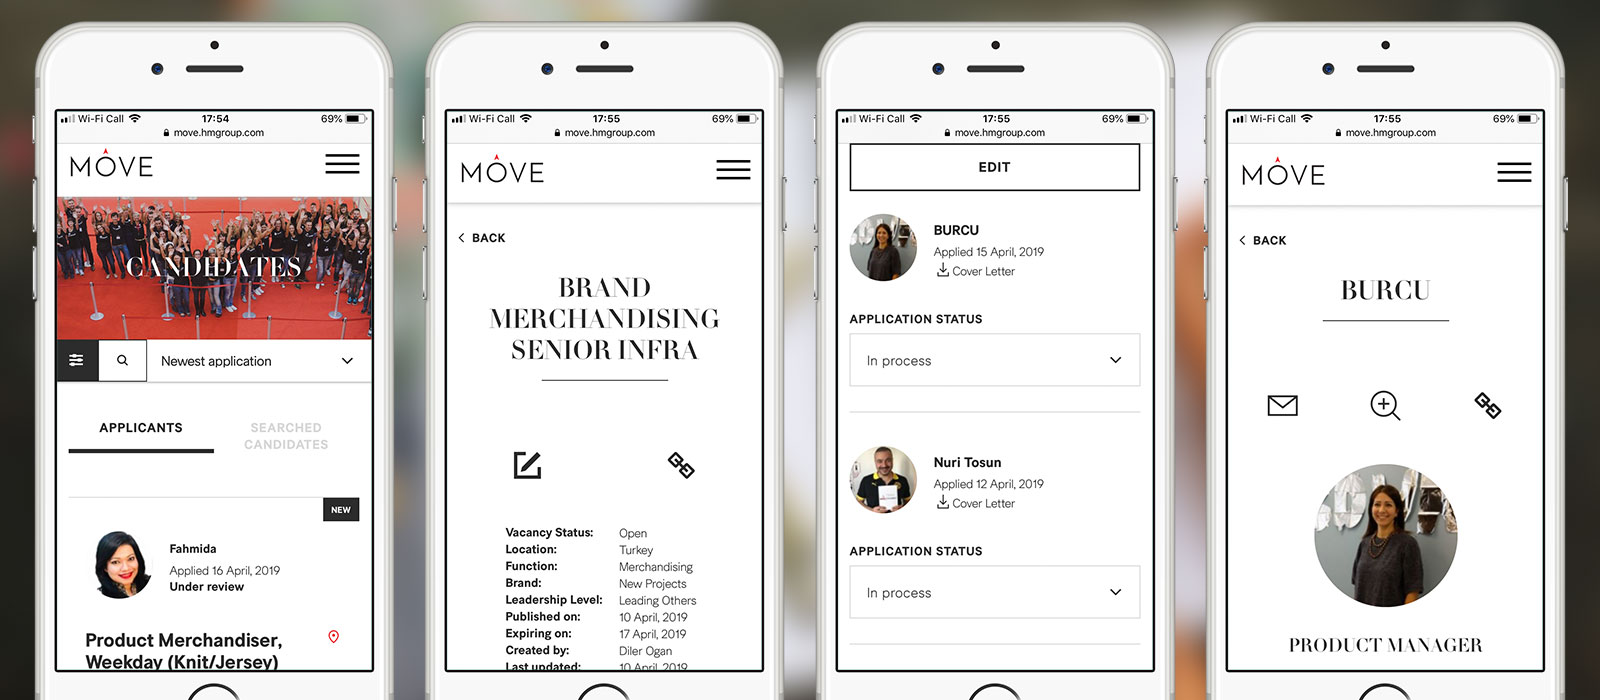 Fully mobile responsive, MOVE offers employees the full range of internal career opportunities within the group